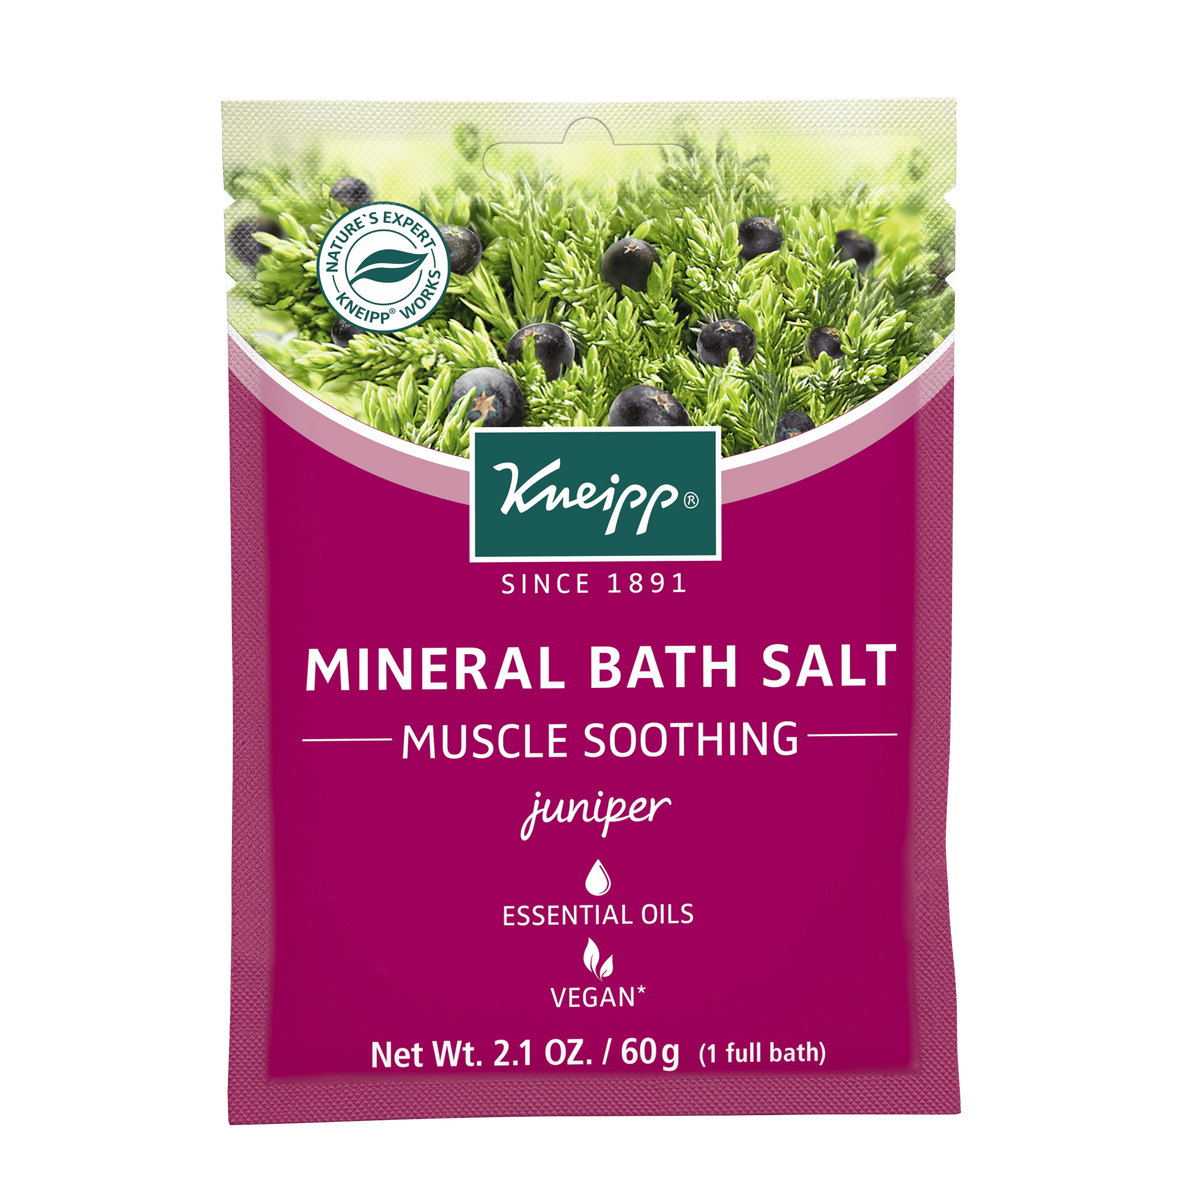 Kneipp Muscle Soothing Mineral Bath Salt